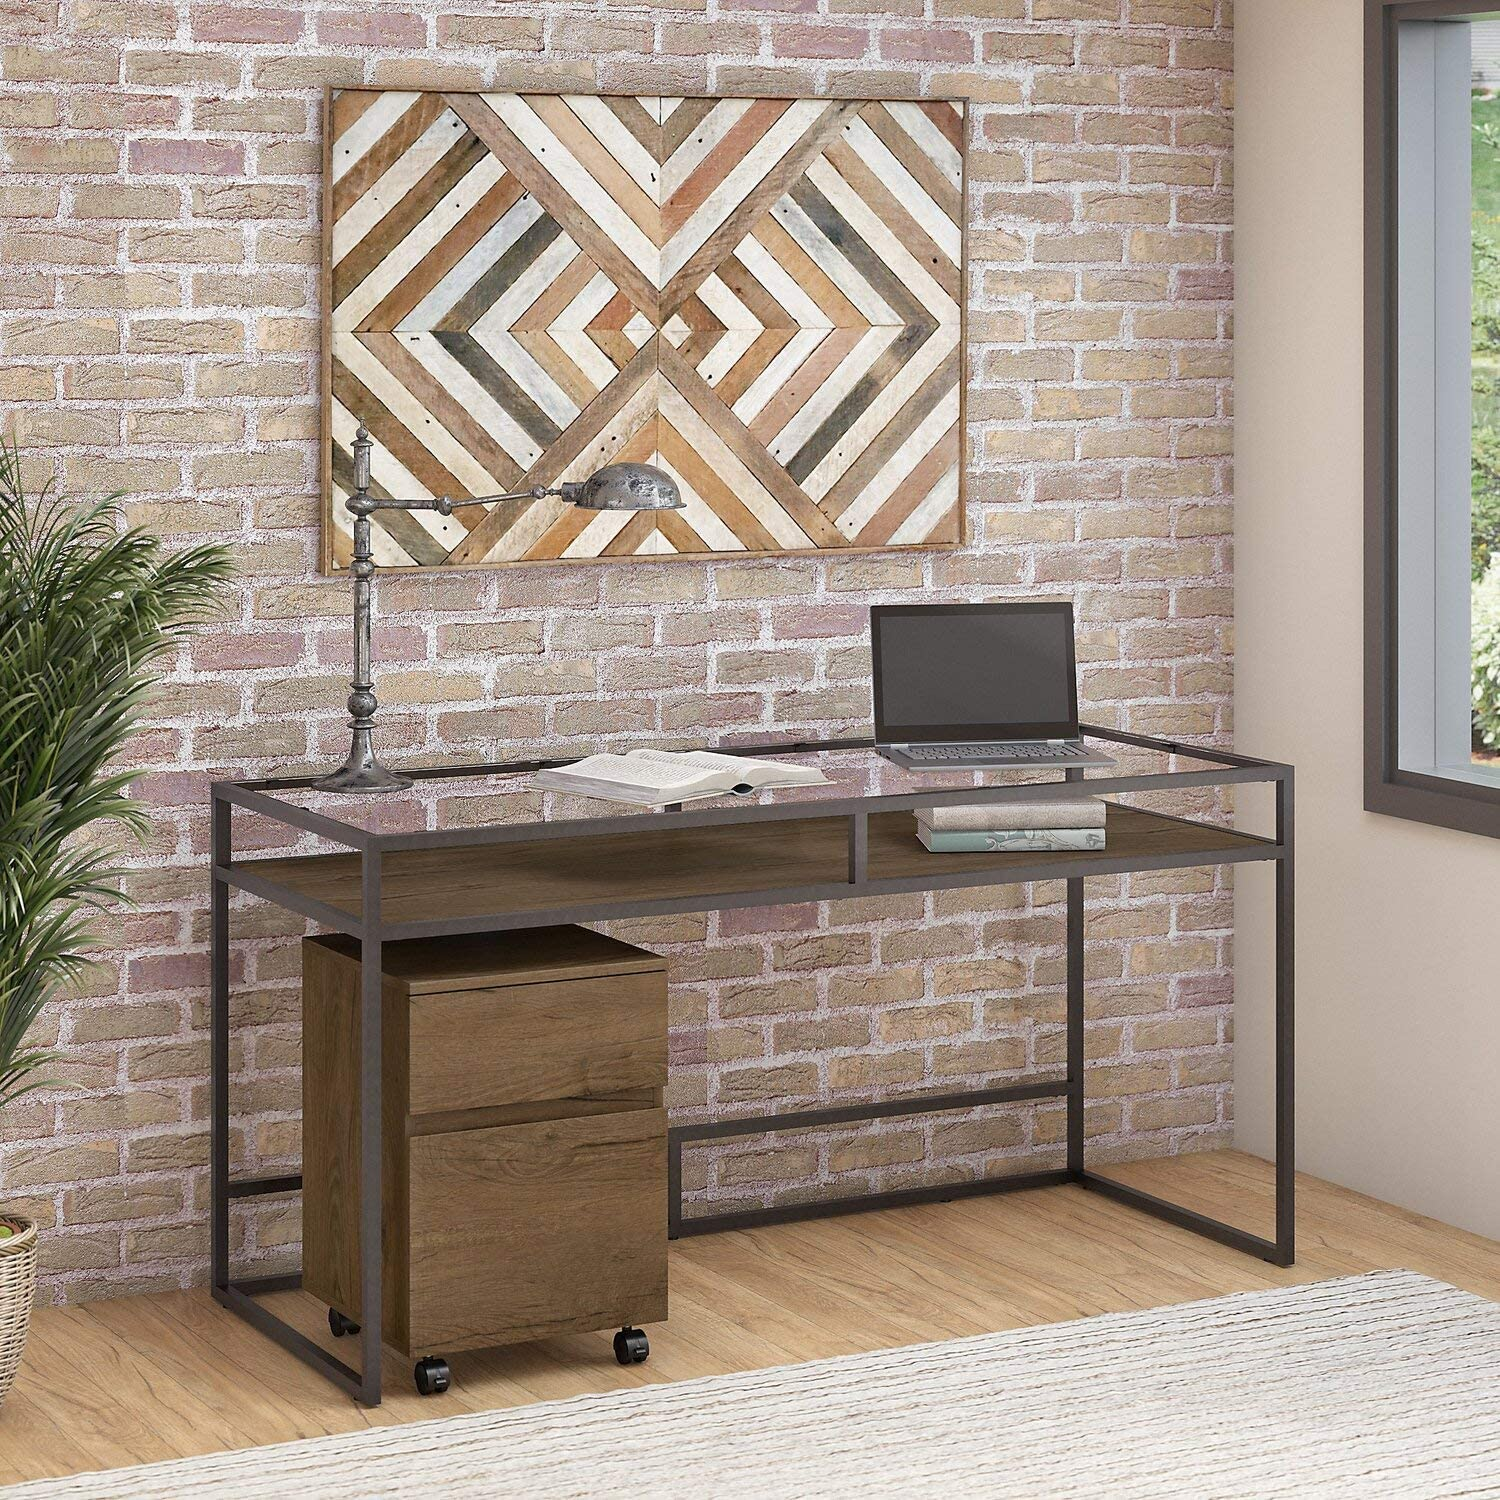 Bush Furniture Anthropology 60W Glass Top Writing Desk with 2 Drawer Mobile File Cabinet in Rustic Brown